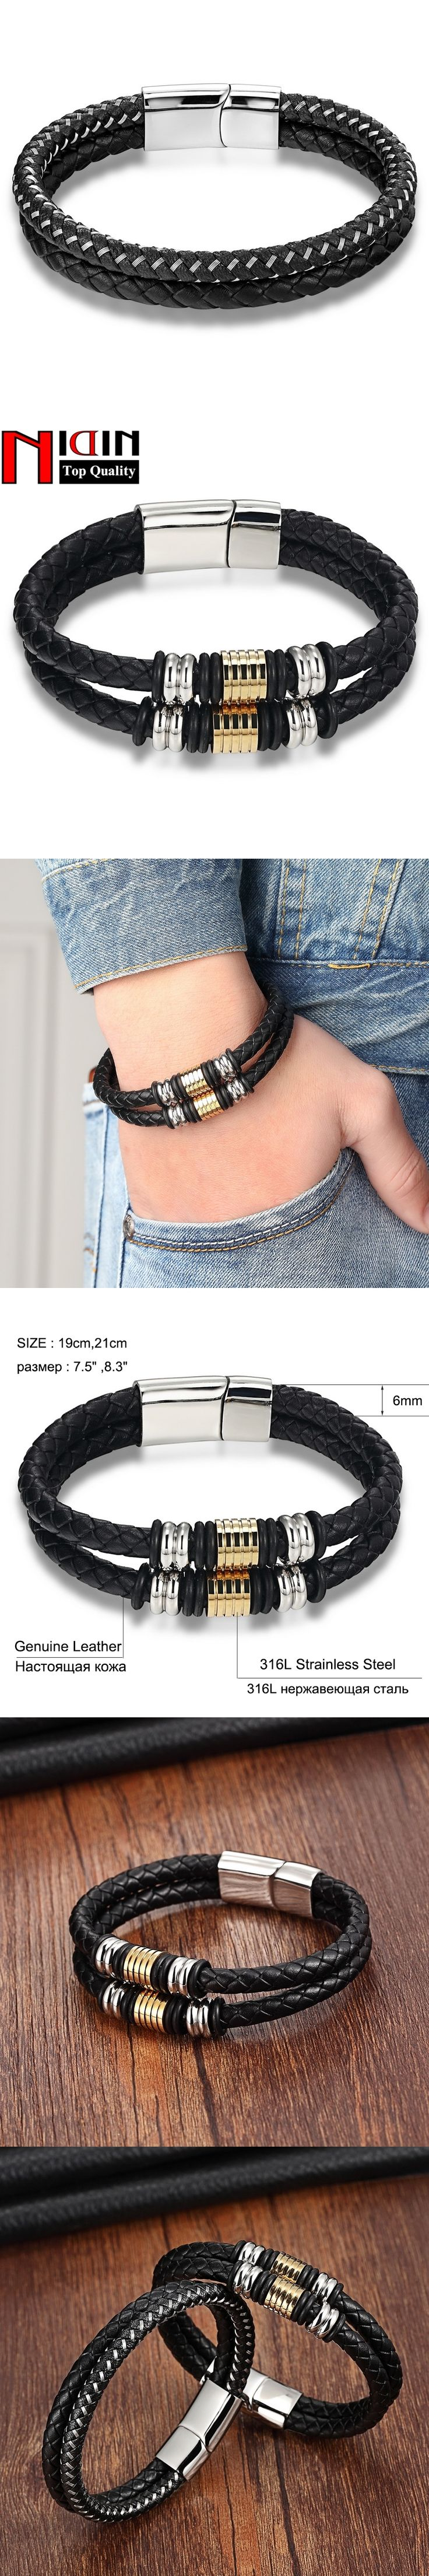 Gold Vintage Fashion Stainless Steel Chain Female Genuine Leather Bracelet Men Vintage Male Braid Jewelry for women Double layer